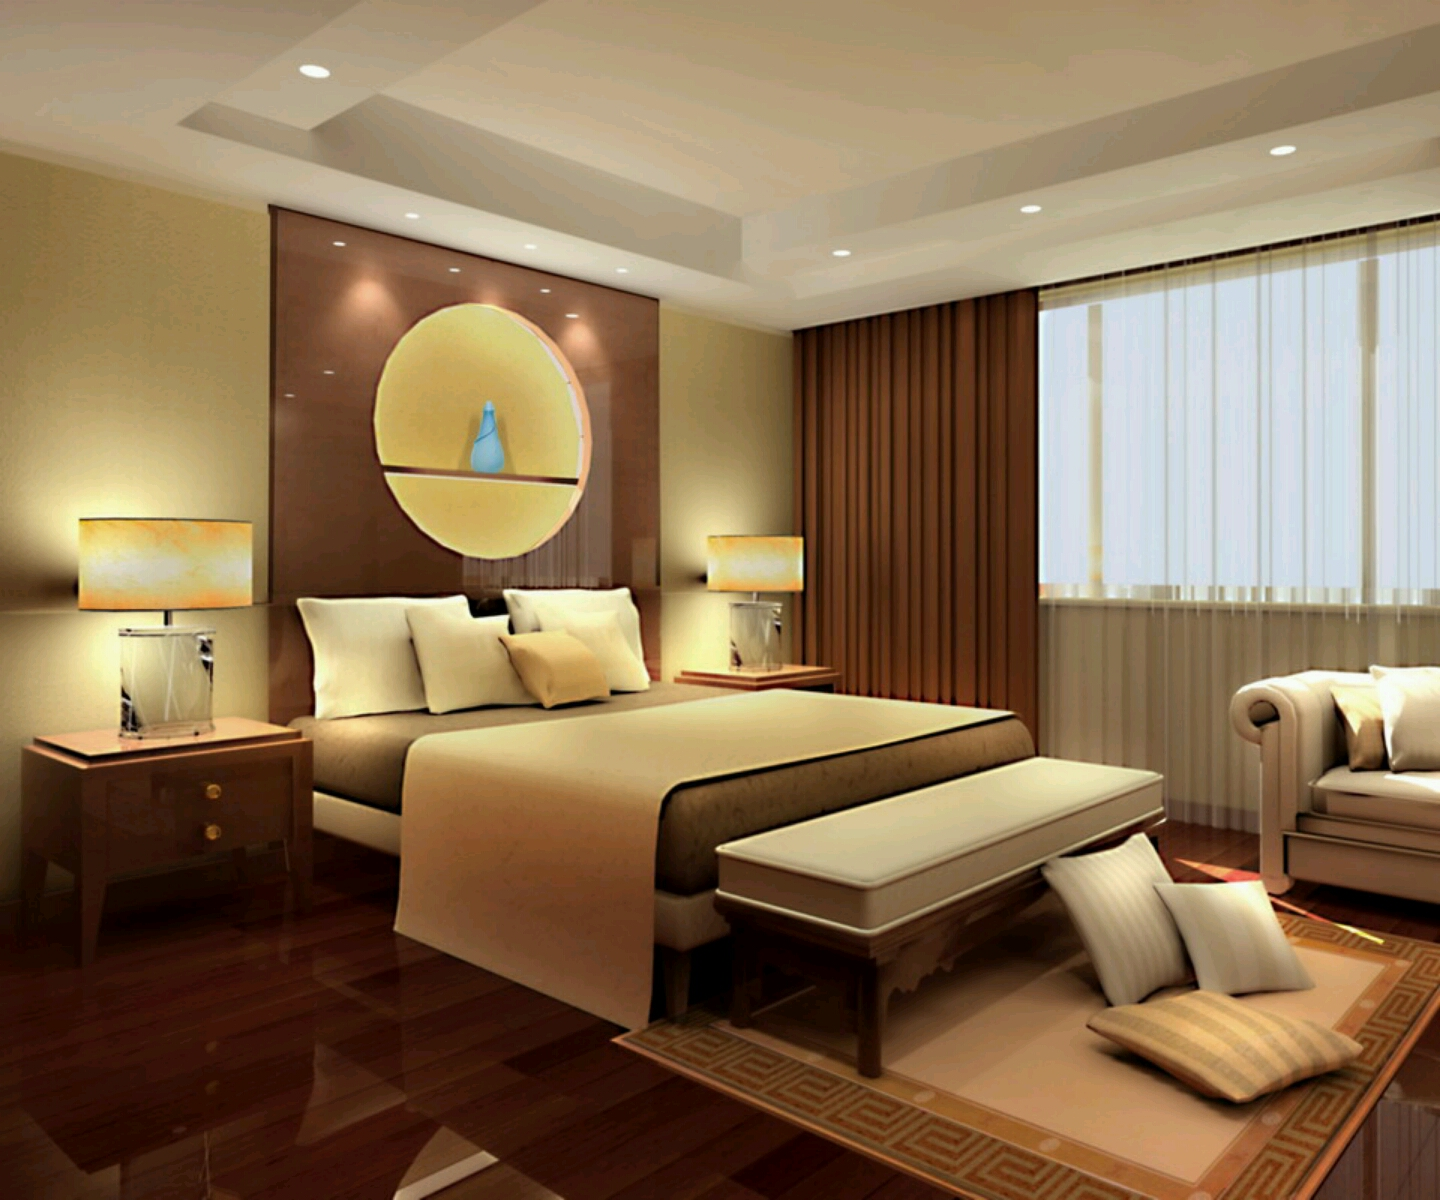 New home designs latest modern beautiful bedrooms for Pictures of beautiful bedroom designs